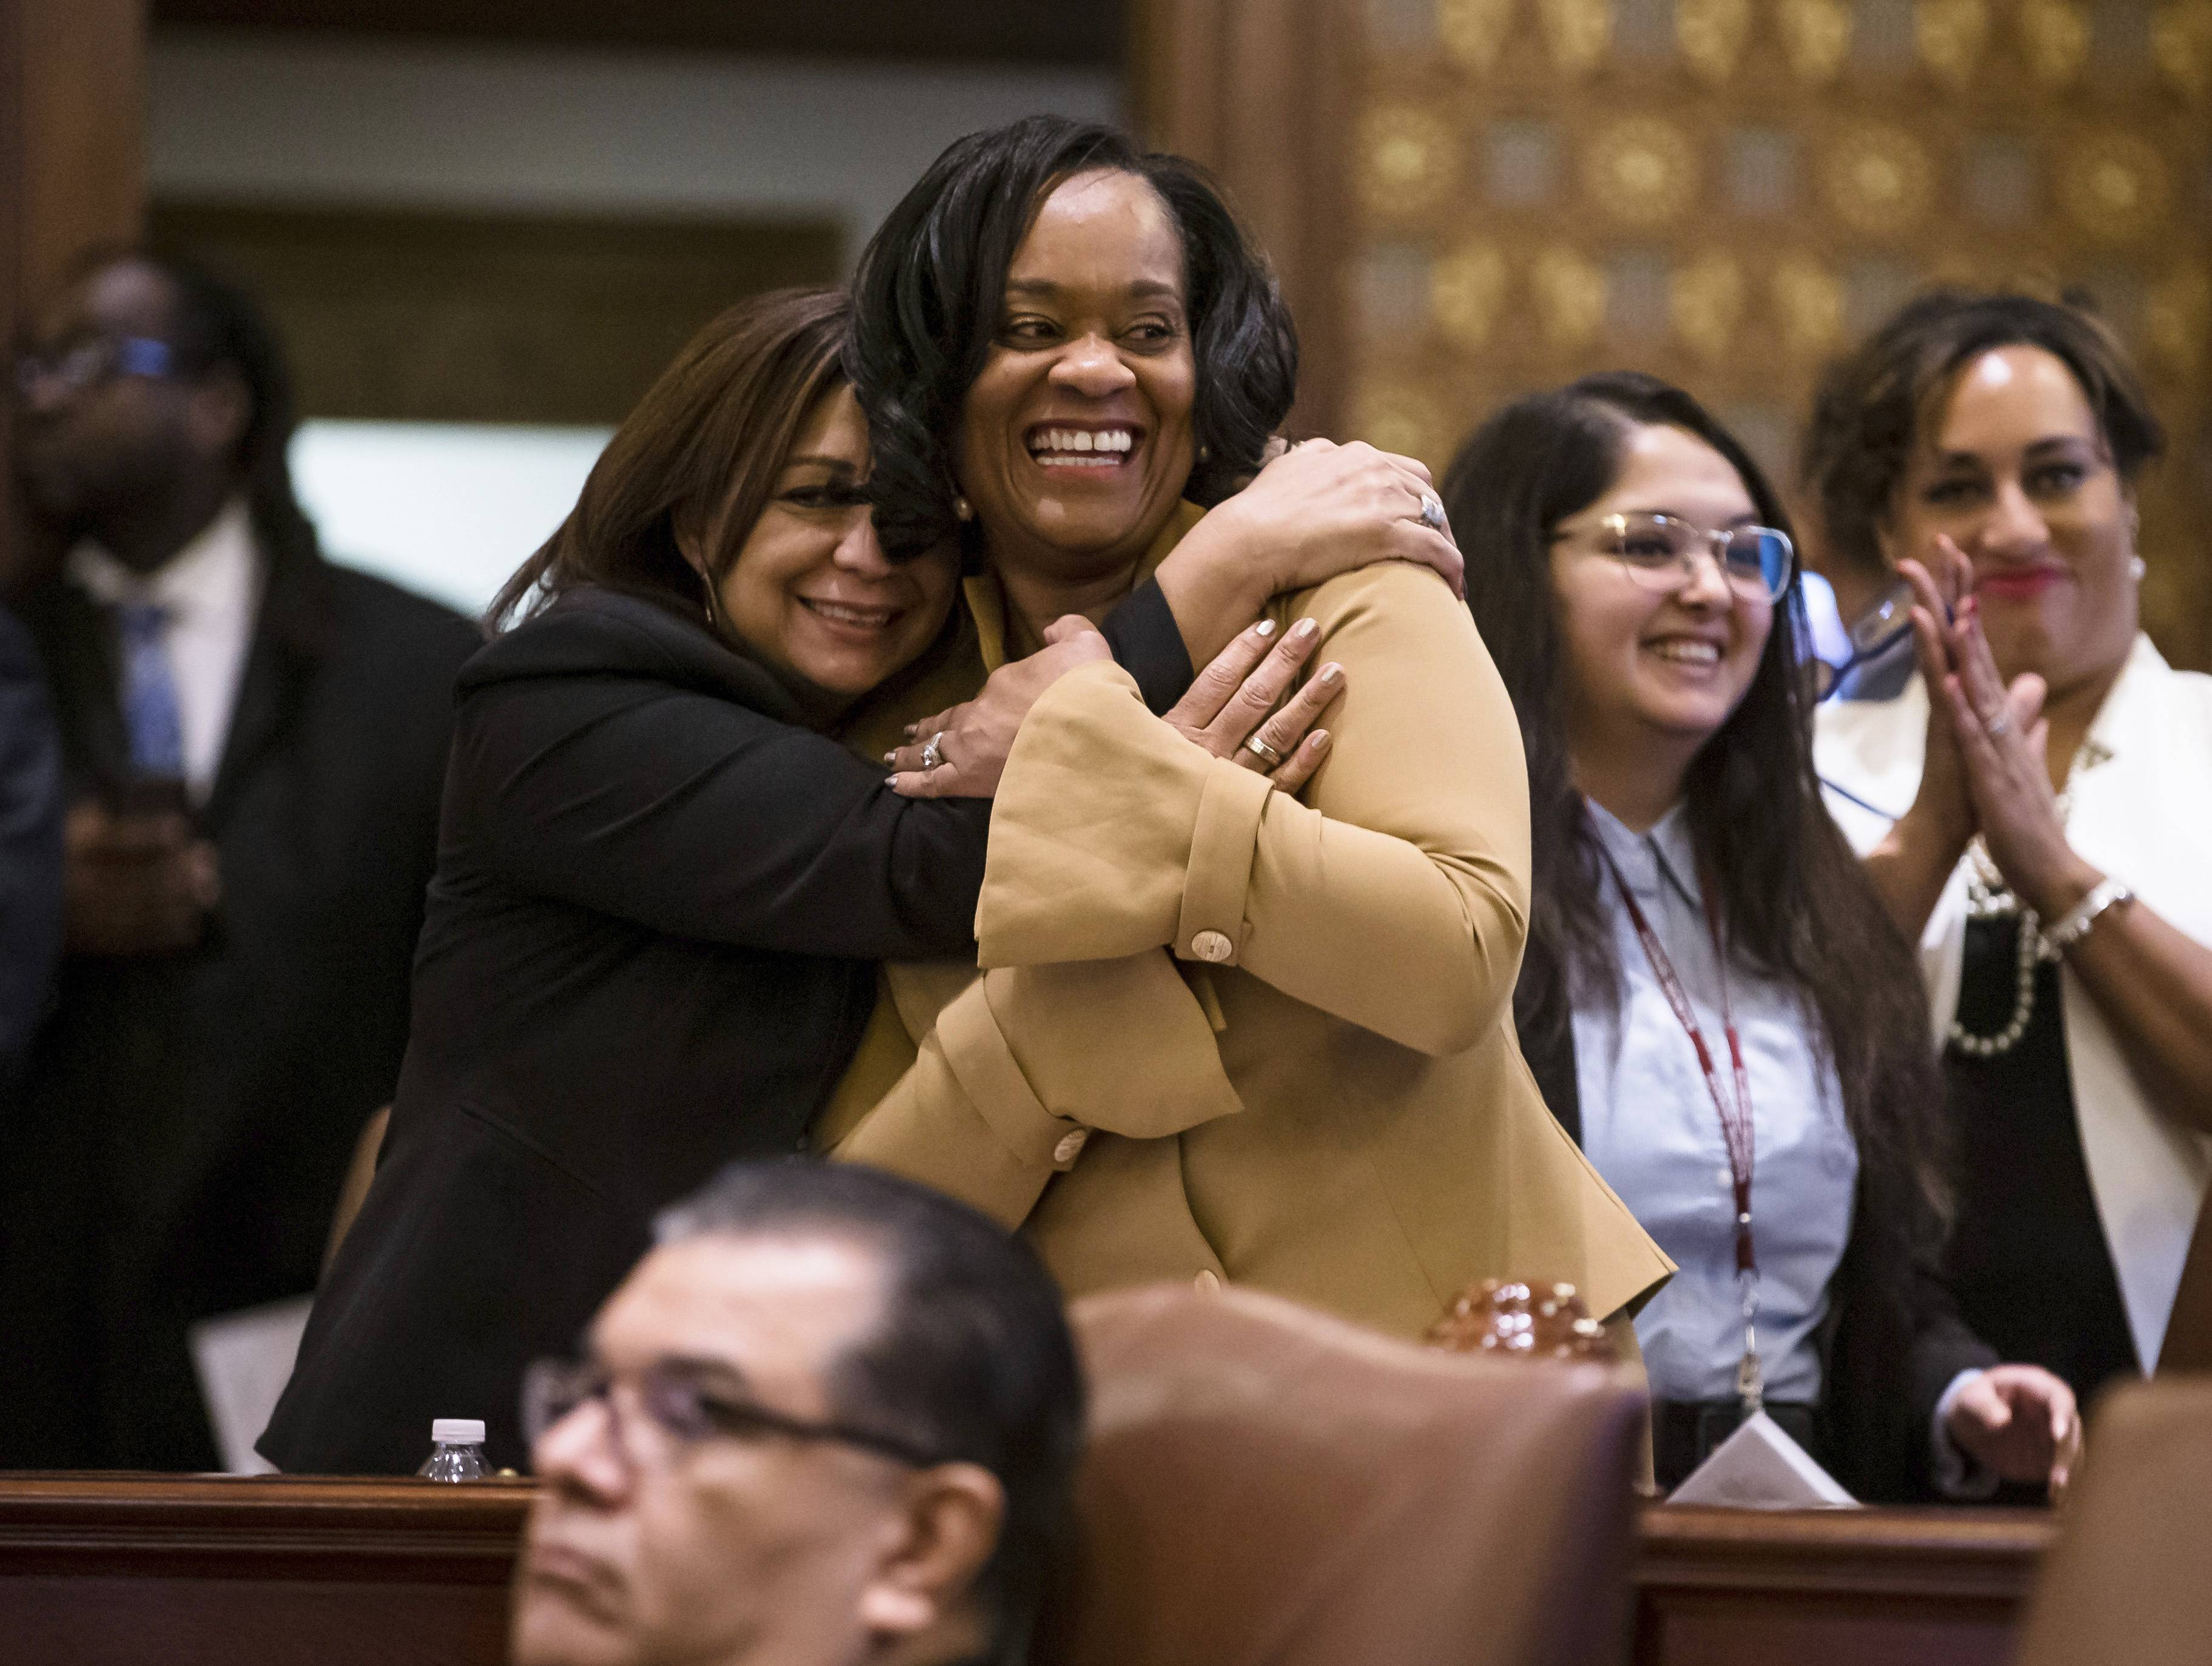 Illinois State Sen. Kimberly Lightford, D-Maywood, center, gets a hug from Illinois State Sen. Iris Martinez, D-Chicago, after Senate Bill 1, a bill sponsored by Lightford to raise the state's minimum wage to $15 an hour by 2025, passed the Senate on a vote of 39-18 at the Illinois state Capitol, Thursday in Springfield.